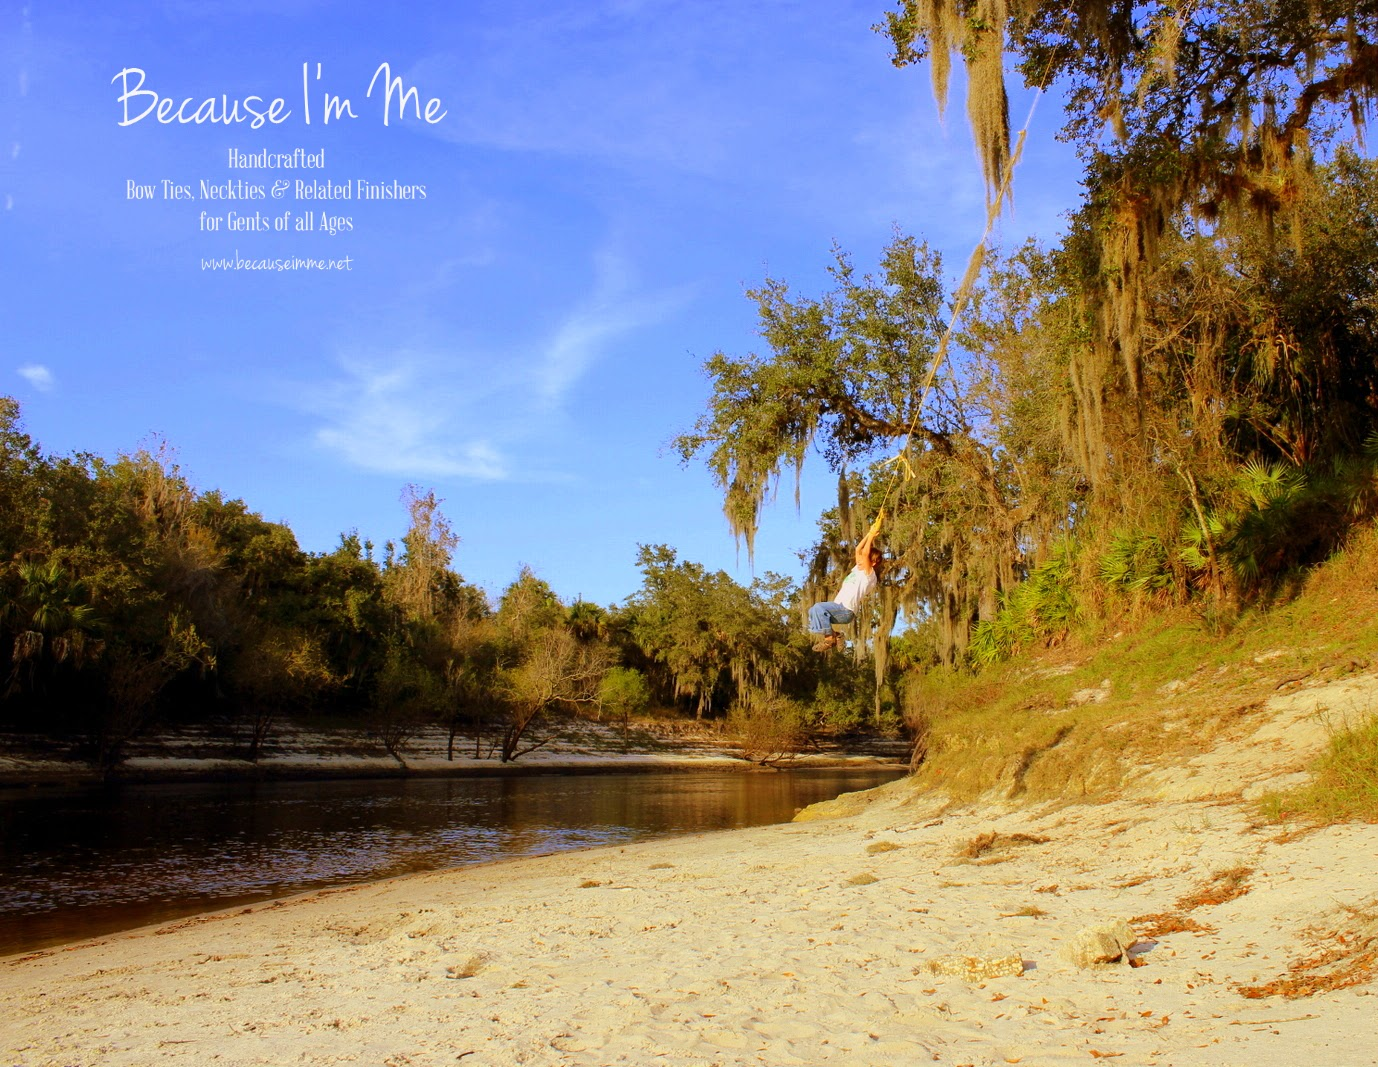 Because I'm Me, Peace River, Arcadia, Florida rope swinging